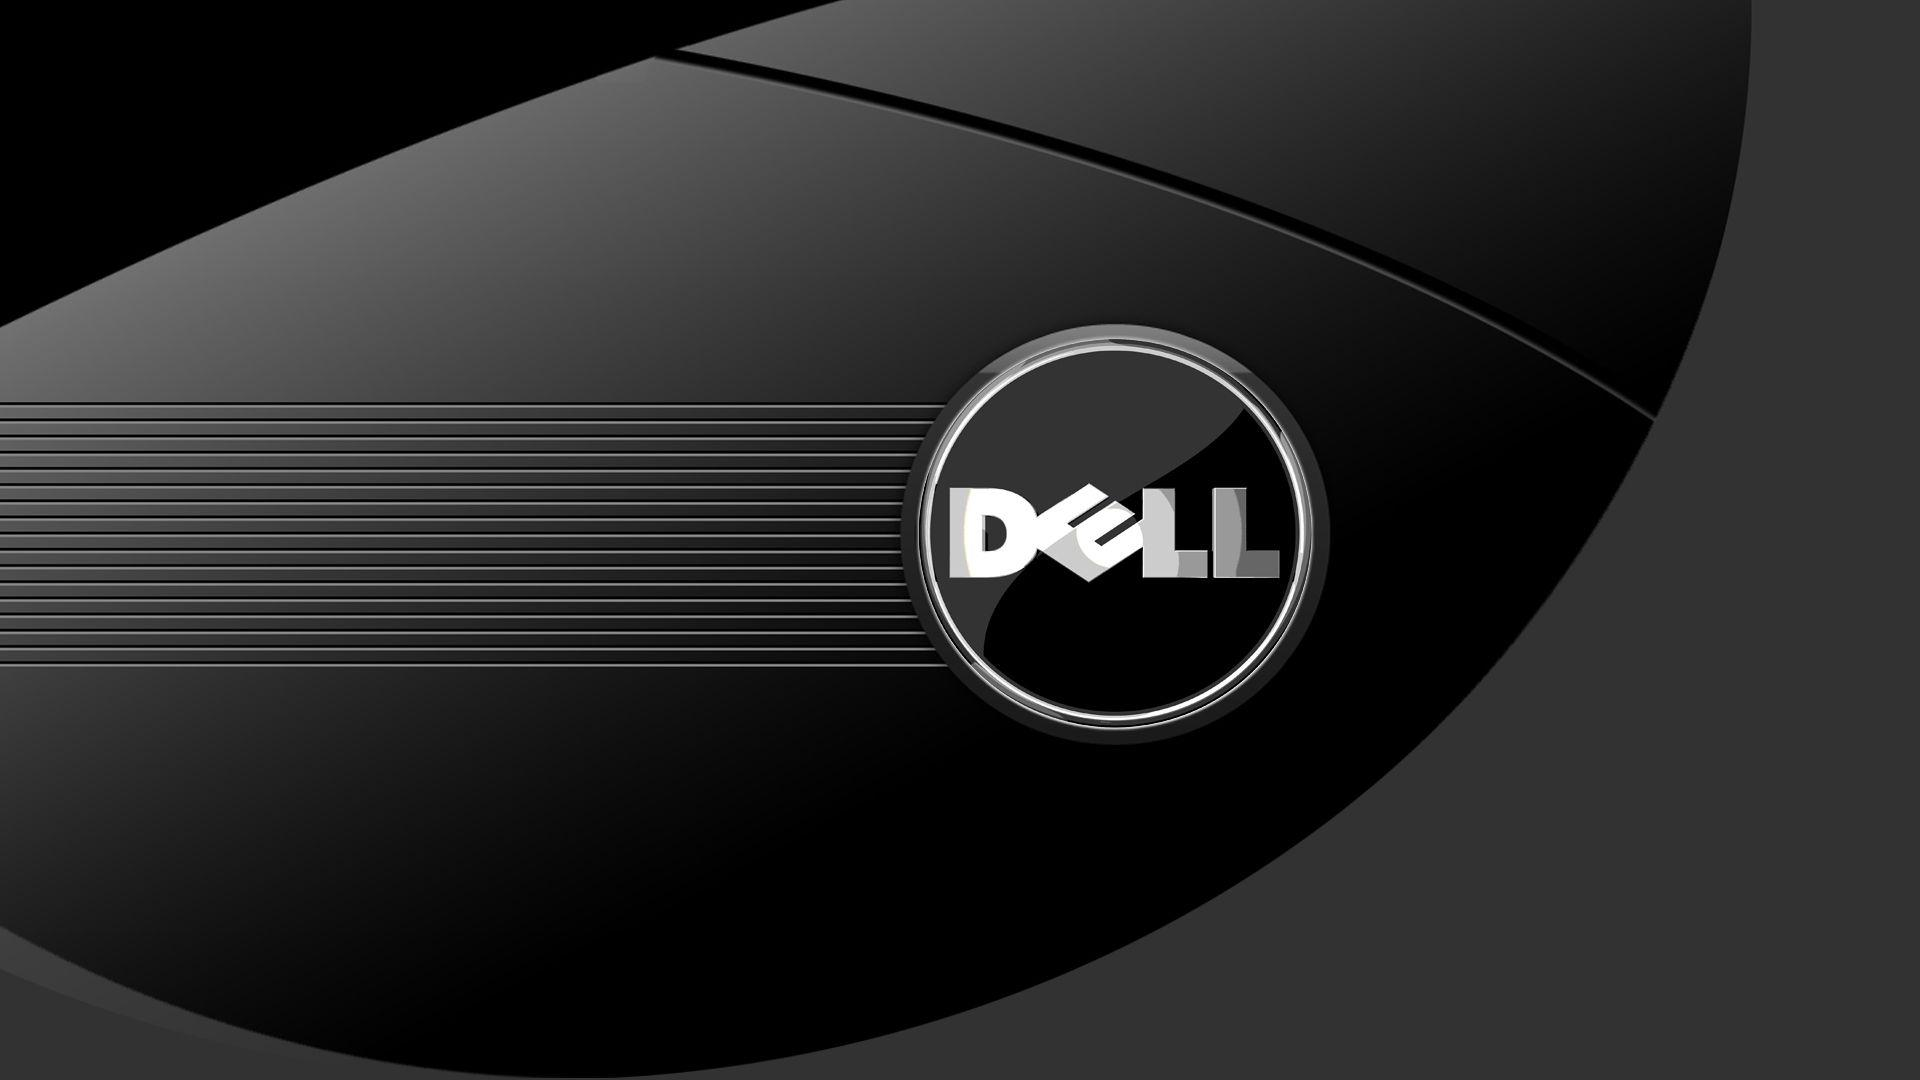 Dell PC Wallpapers   Top Dell PC Backgrounds   WallpaperAccess 1920x1080